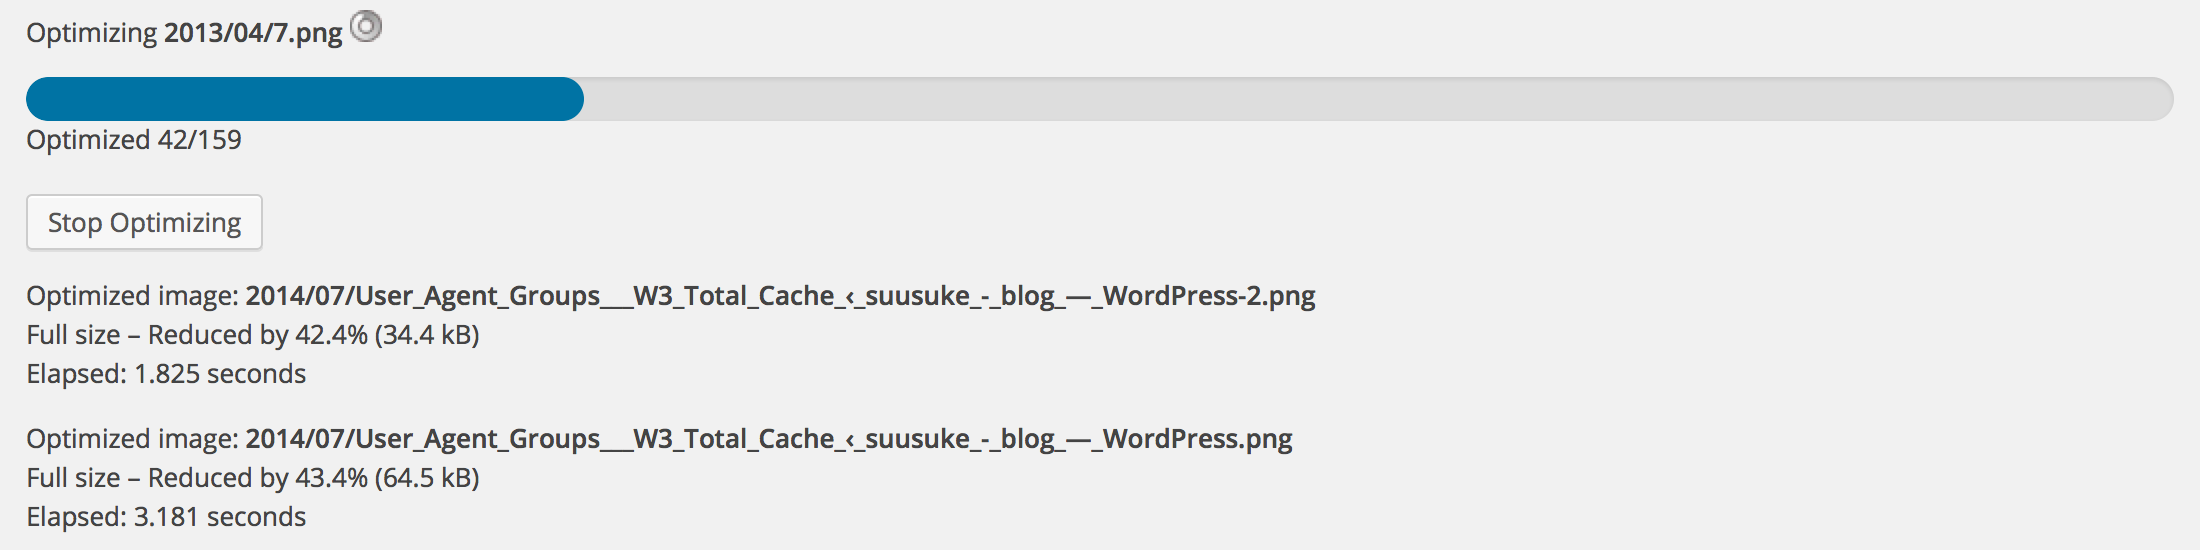 Bulk_Optimize_‹_suusuke_-_blog_—_WordPress